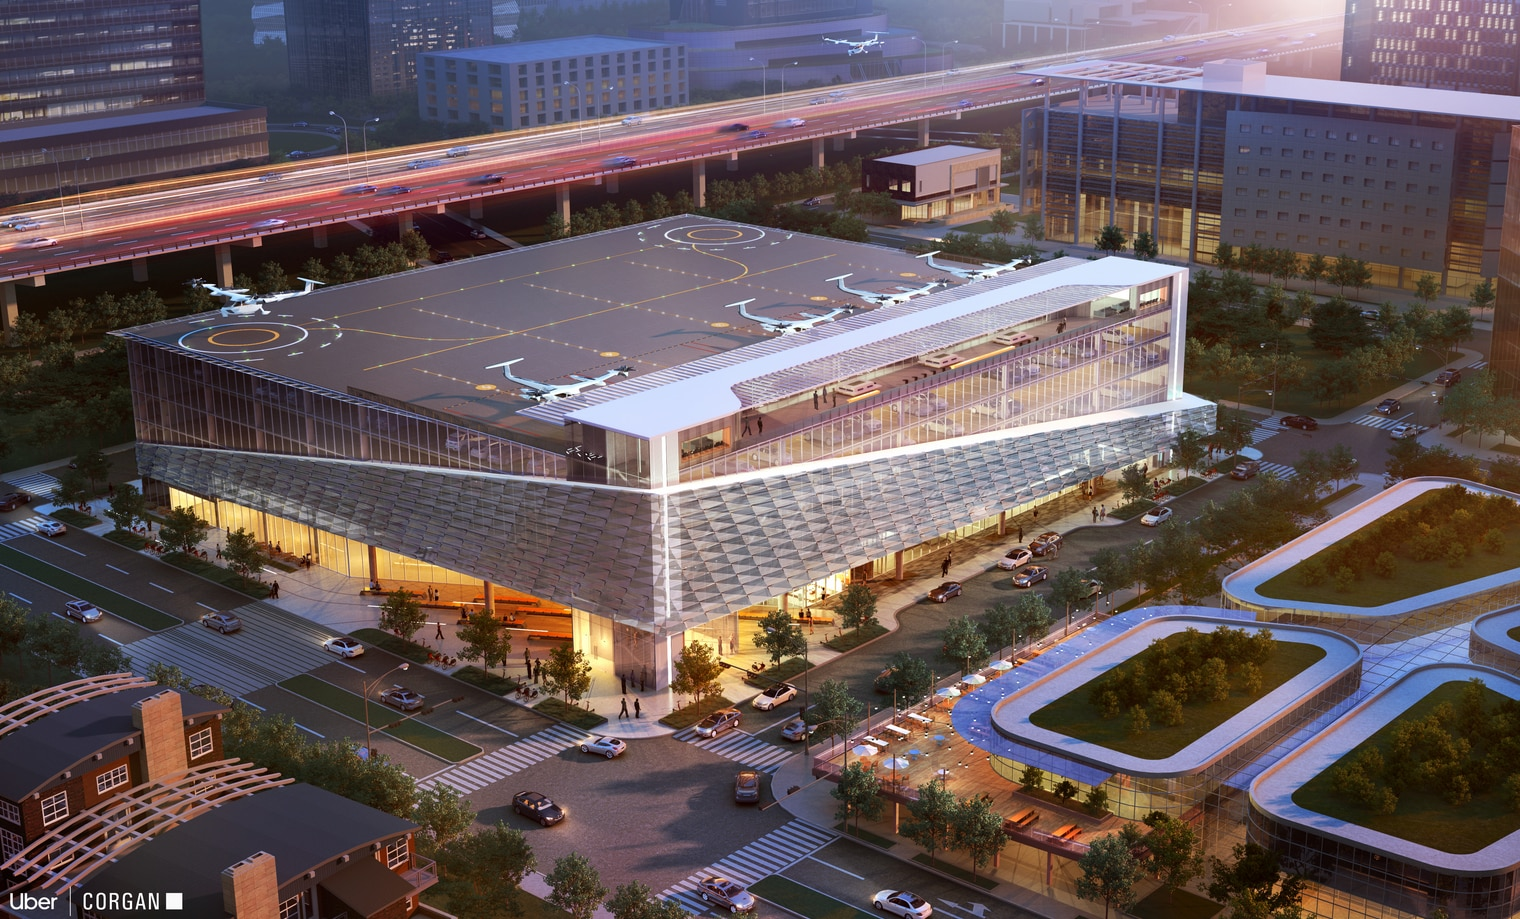 Dallas-based architectural firm Corgan's suburban skyport concept would be built atop an existing parking garage.